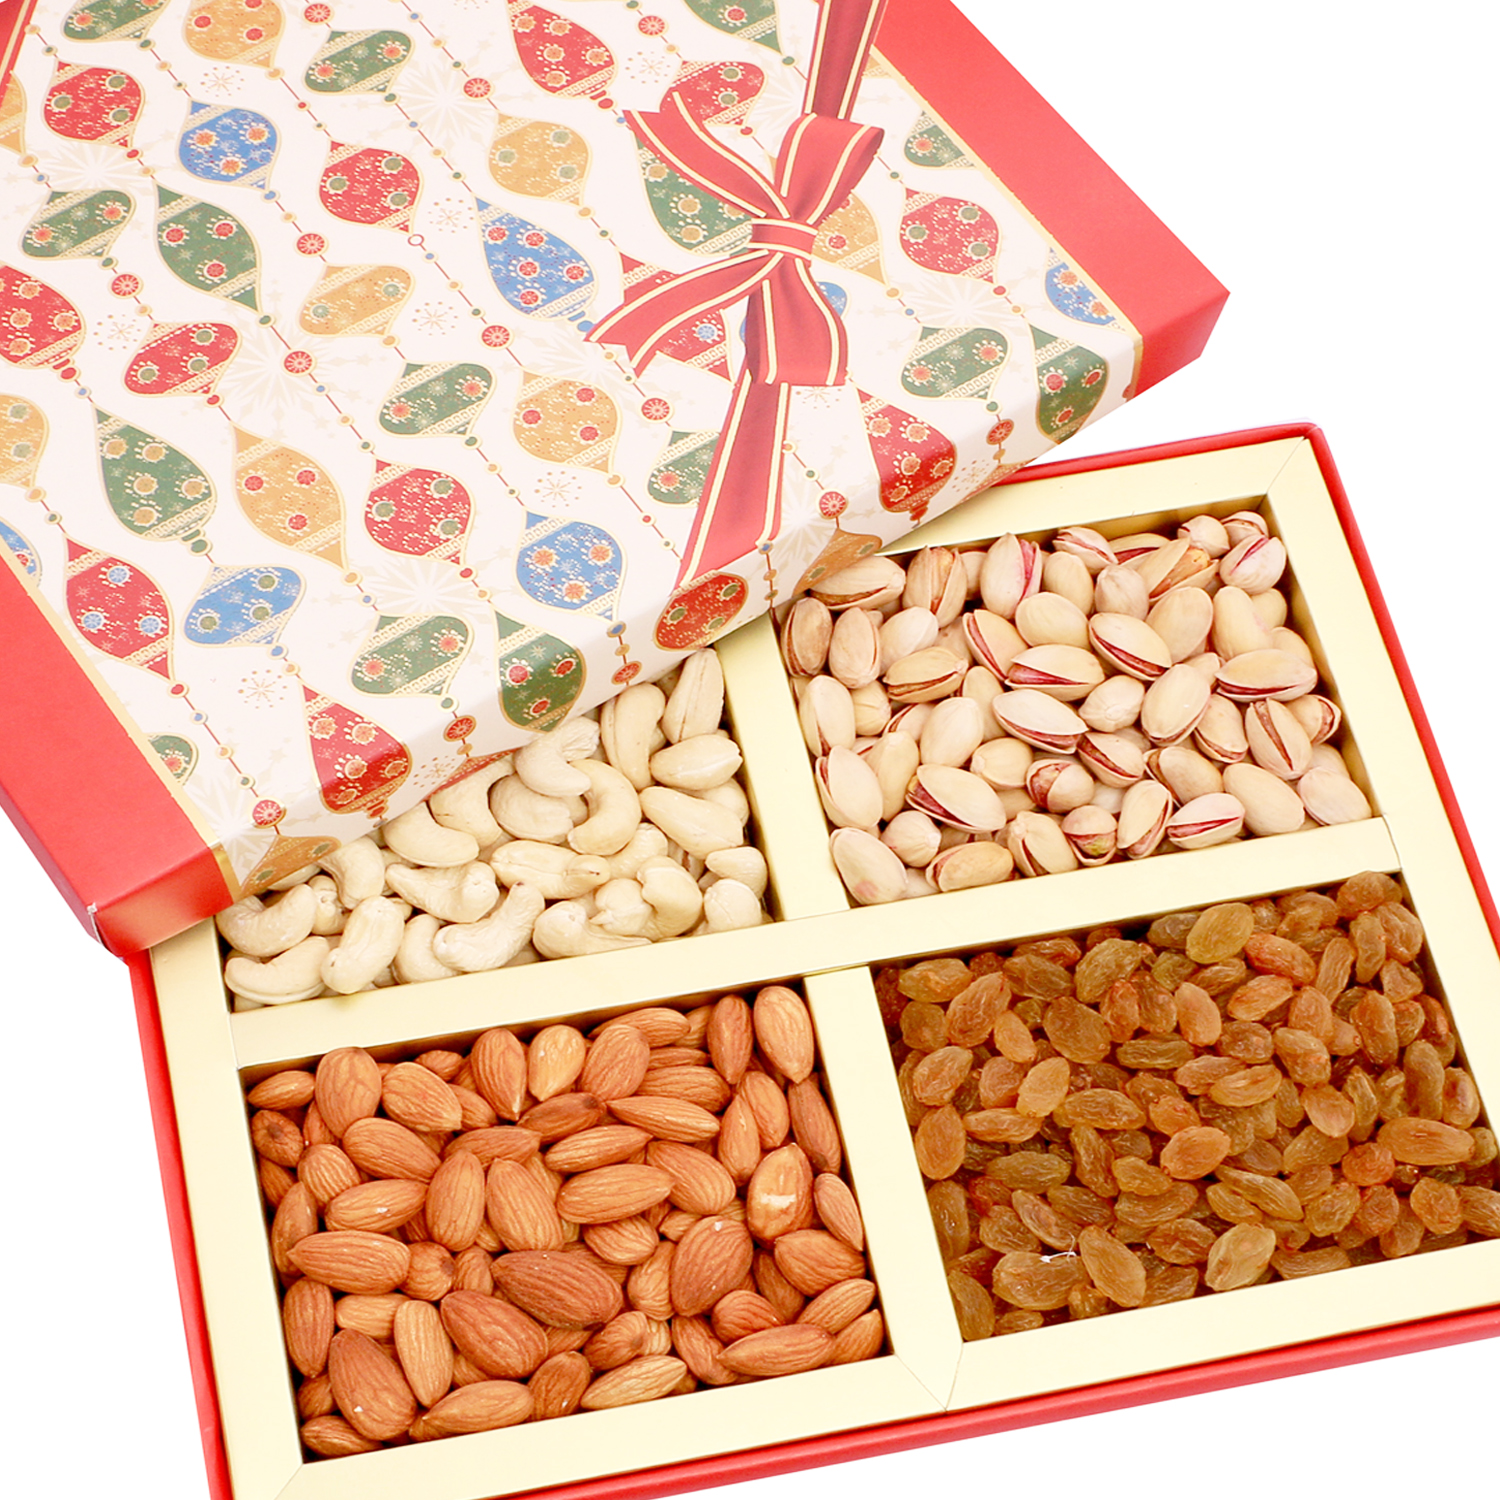 Red Square 4 part Dryfruit Box